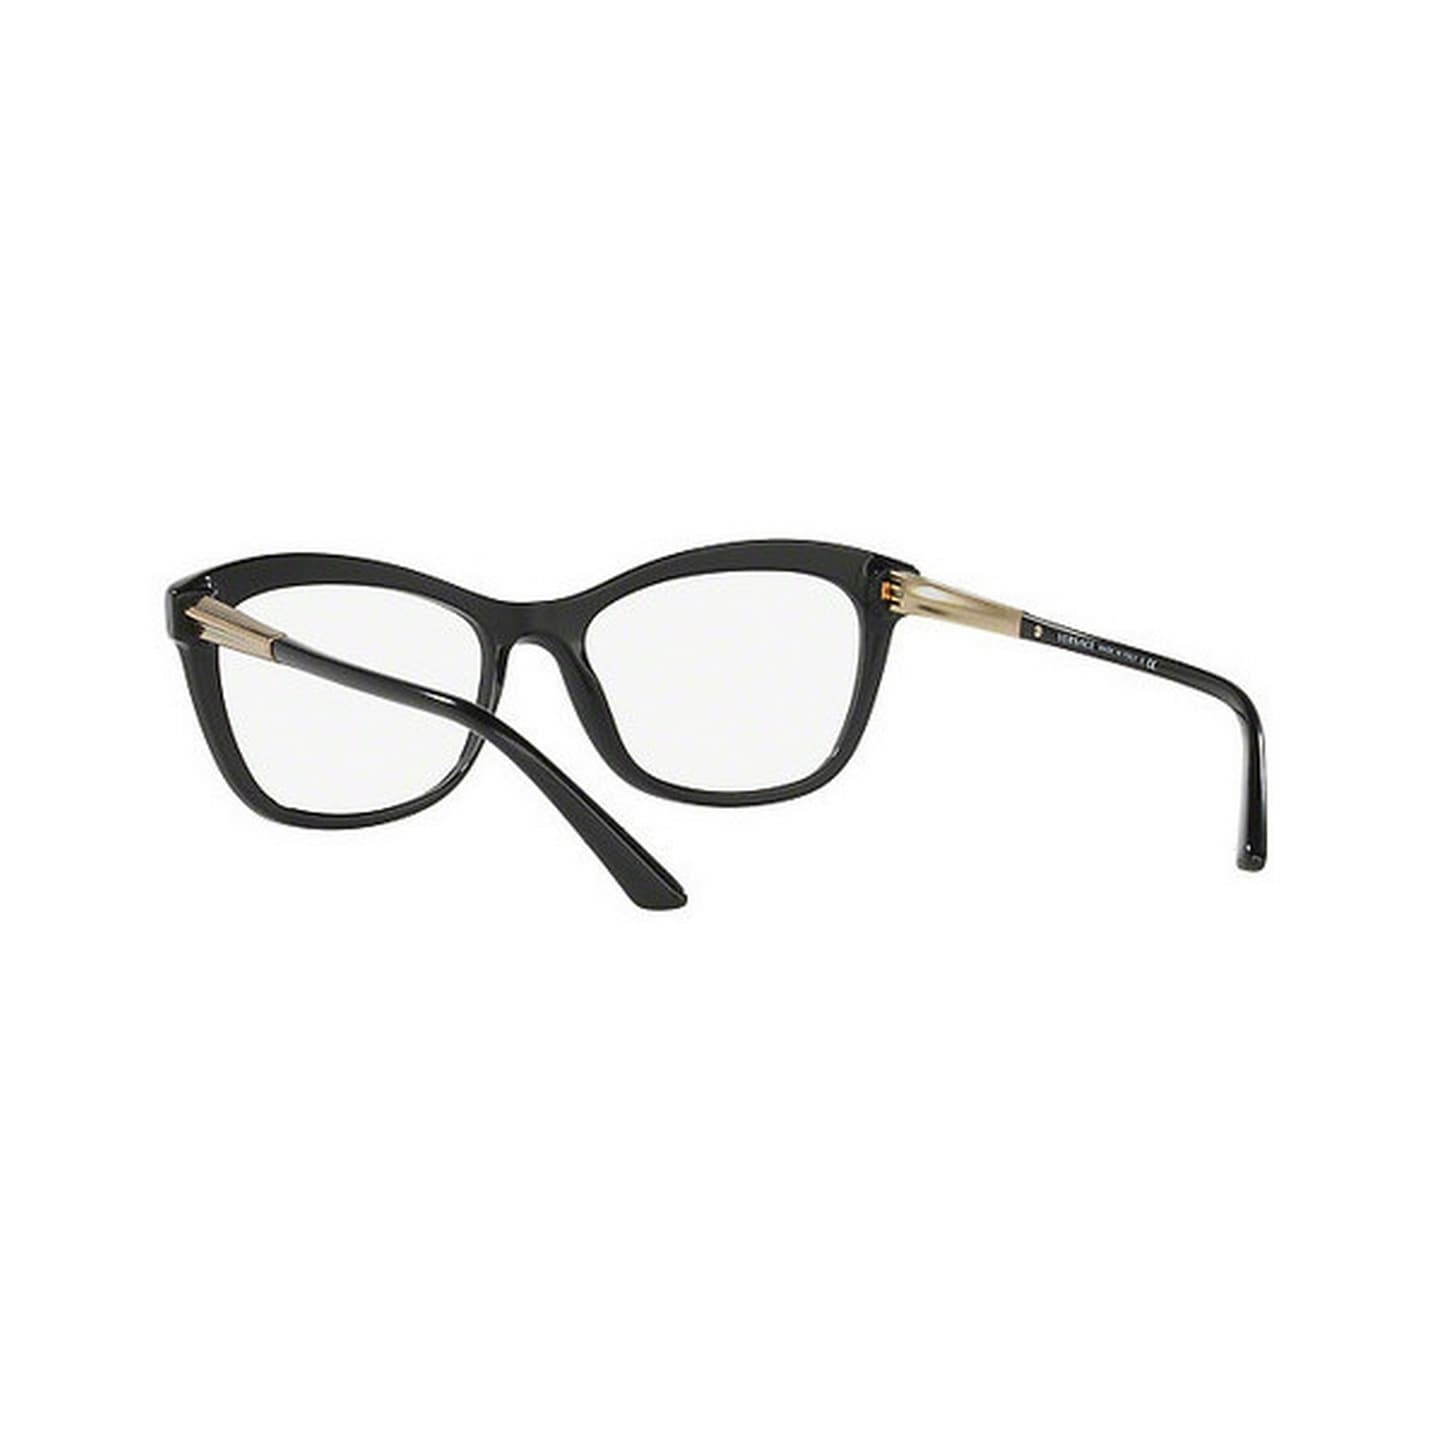 a38995f0486 Shop Versace Women s VE3224 GB1 54 Cateye Plastic Black Clear Eyeglasses -  Free Shipping Today - Overstock - 14779865